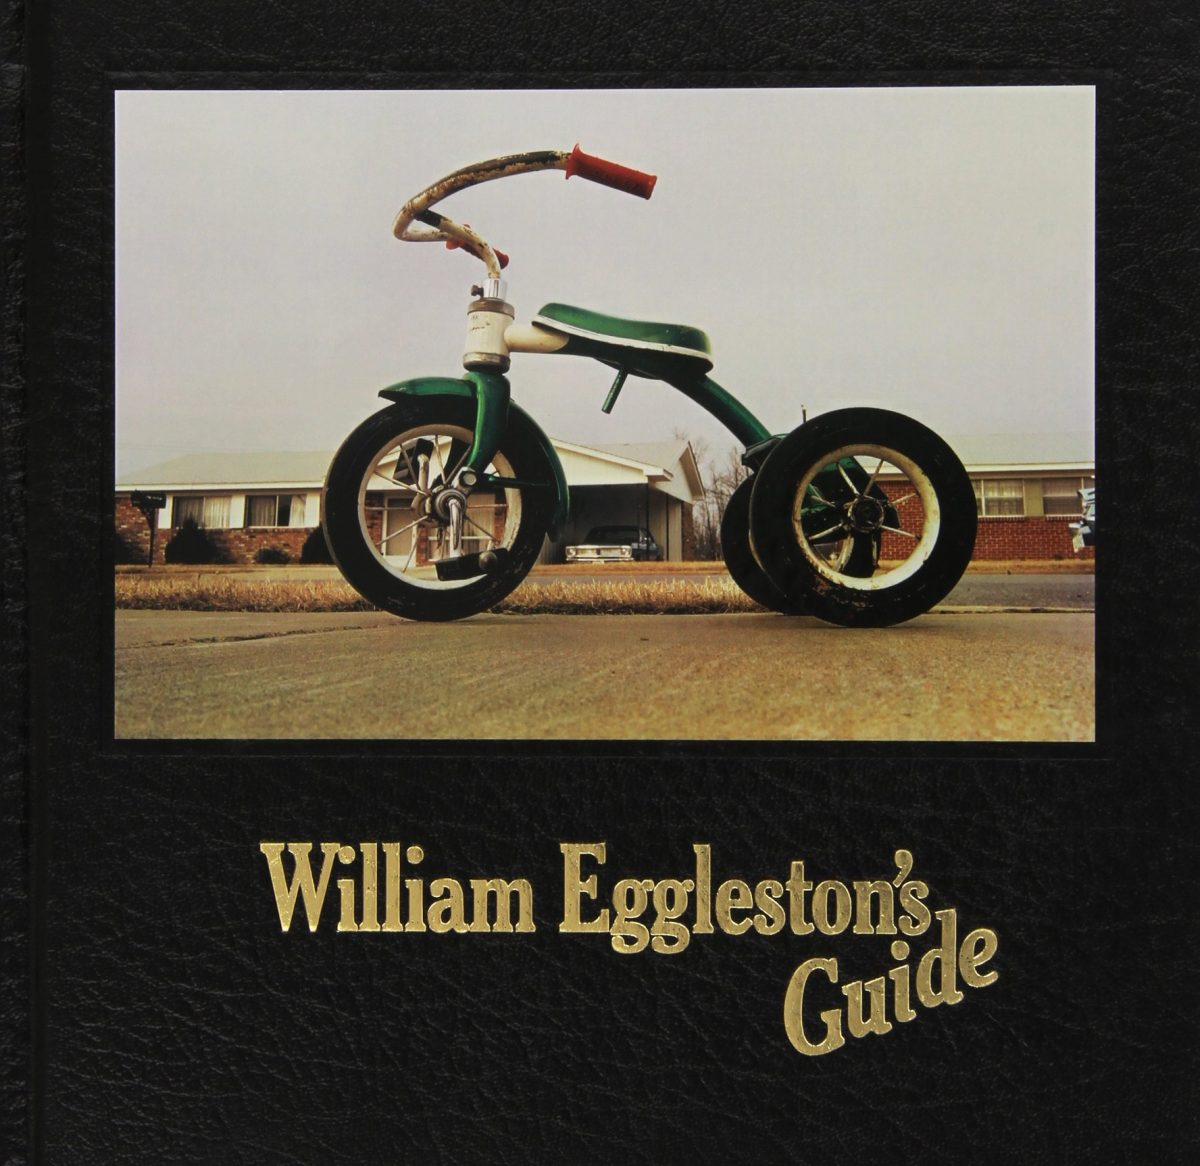 William Eggleston's Guide by William Eggleston and John Szarkowski